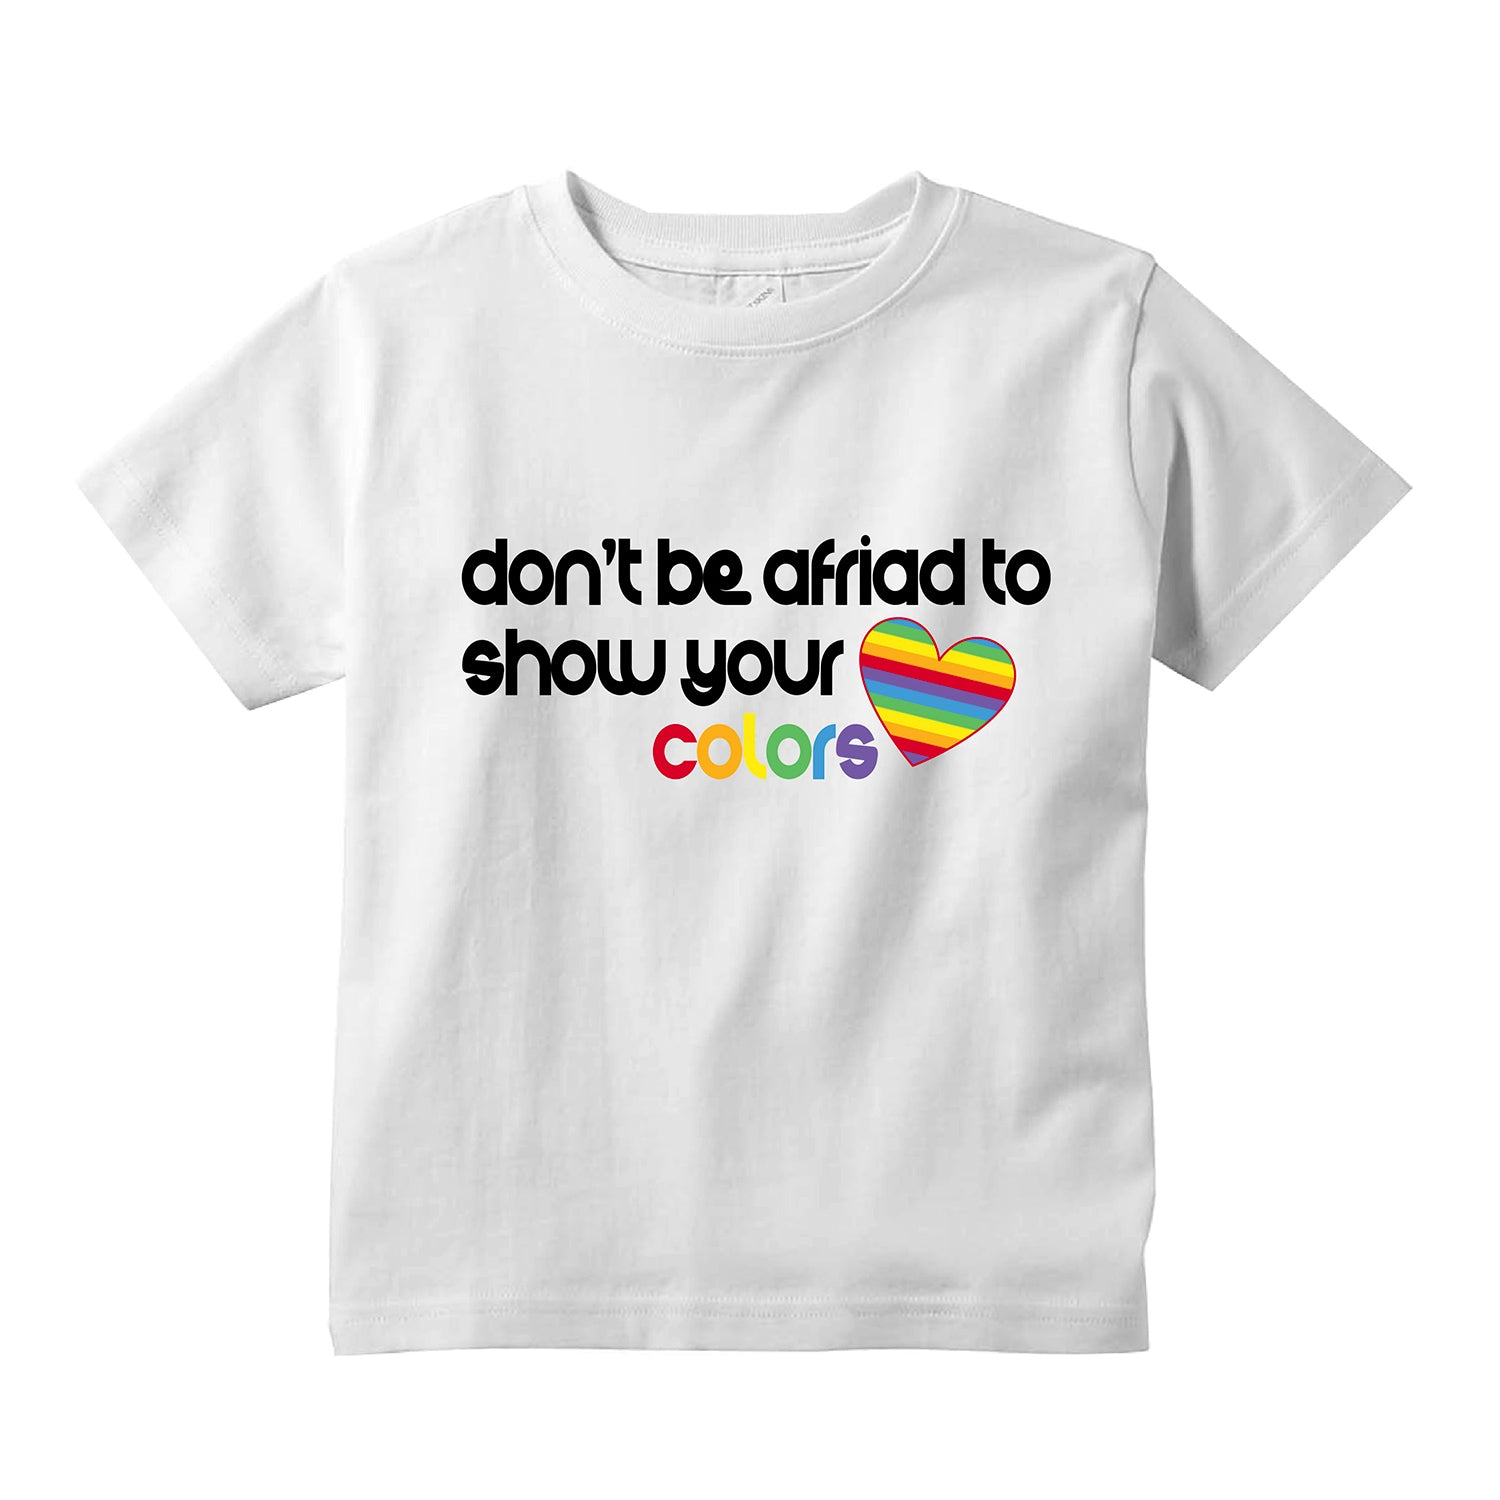 Show Your Colors Kids T-Shirt + FREE Love is Love Pride Face Mask